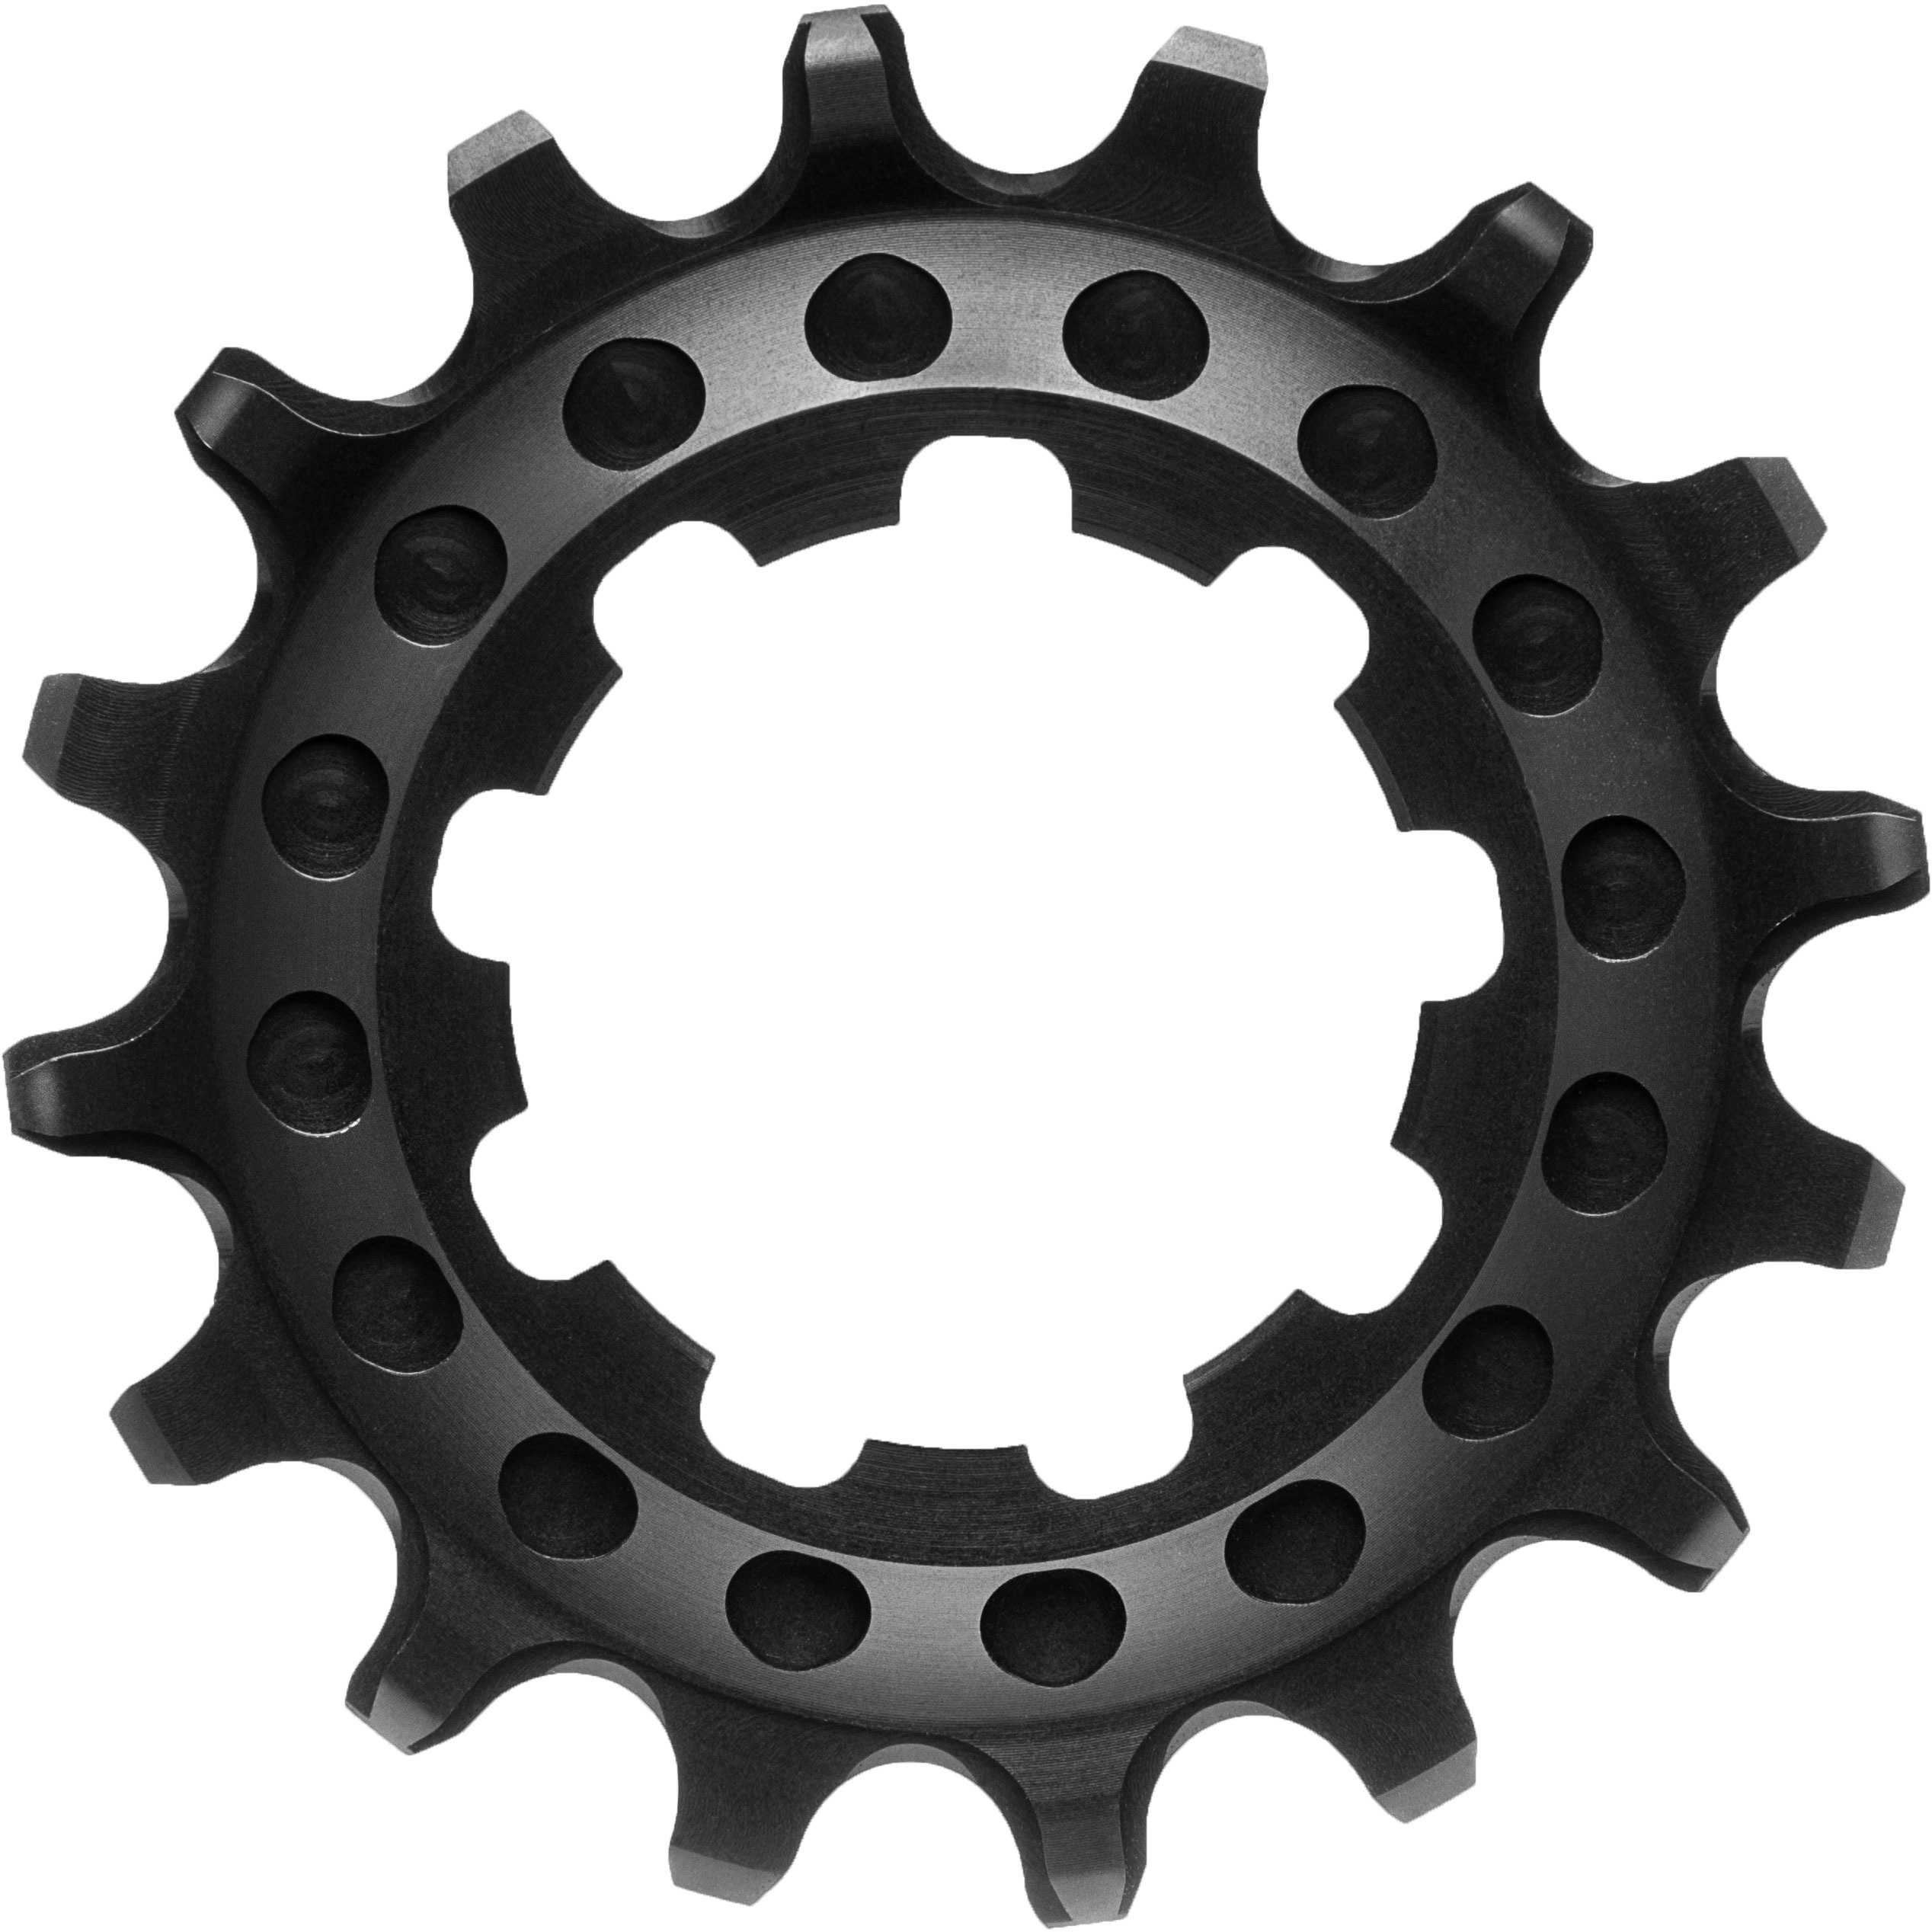 BAGKLINGE ABSOLUTEBLACK SS NARROW-WIDE 16T SORT | chainrings_component